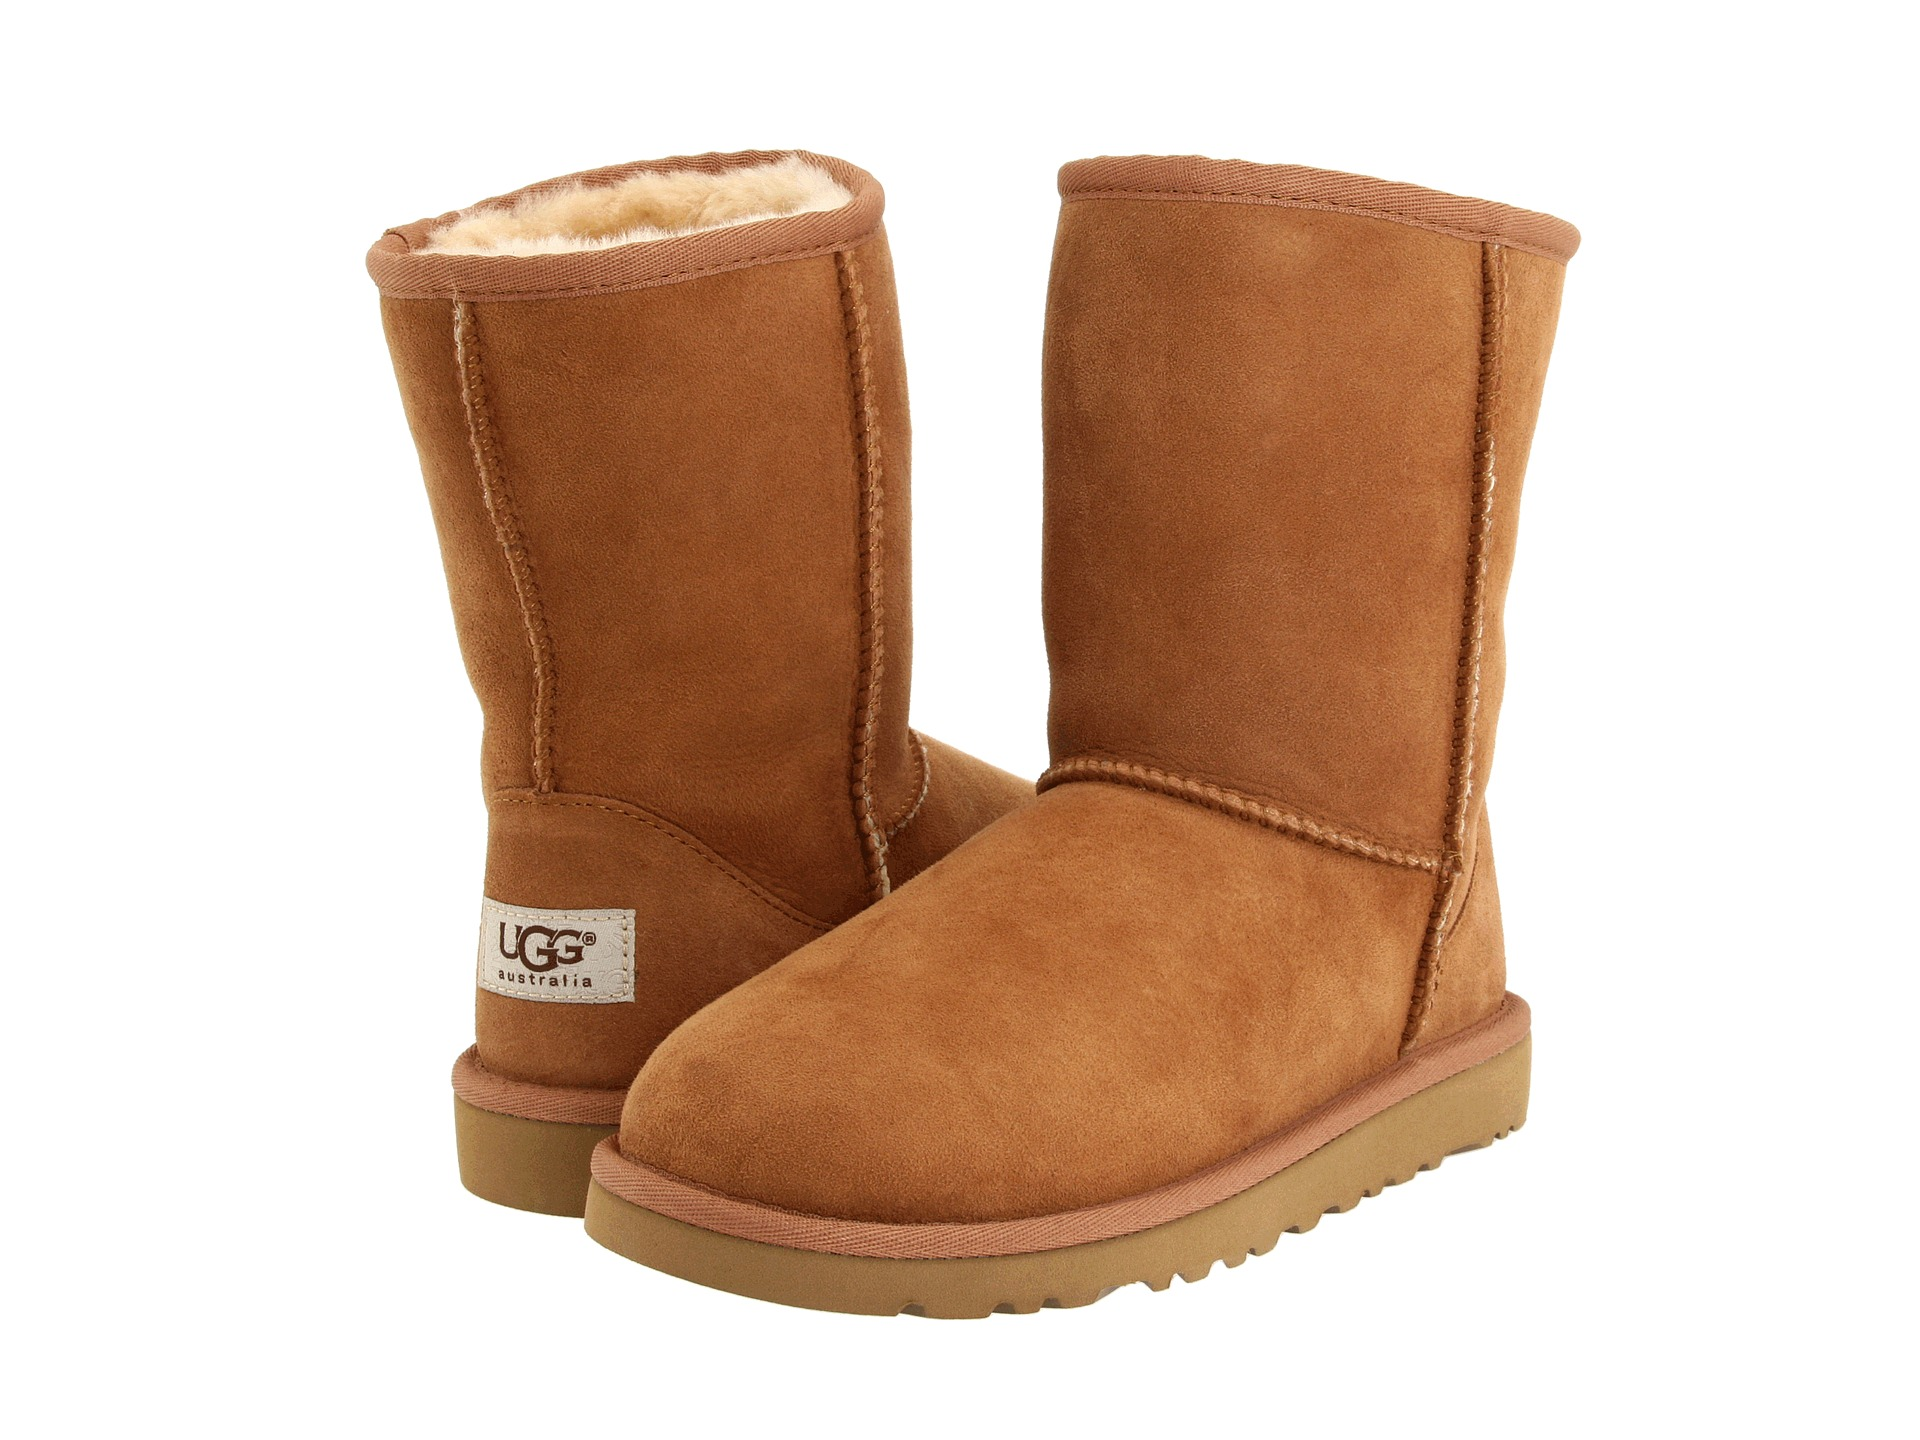 Details: Keep things cute and cozy all season long with the UGG Kids Classic II boot. Signature Twinface upper with a round toe. UGG signature Twinface sheepskin is treated on both sides to provide maximum softness and comfort.